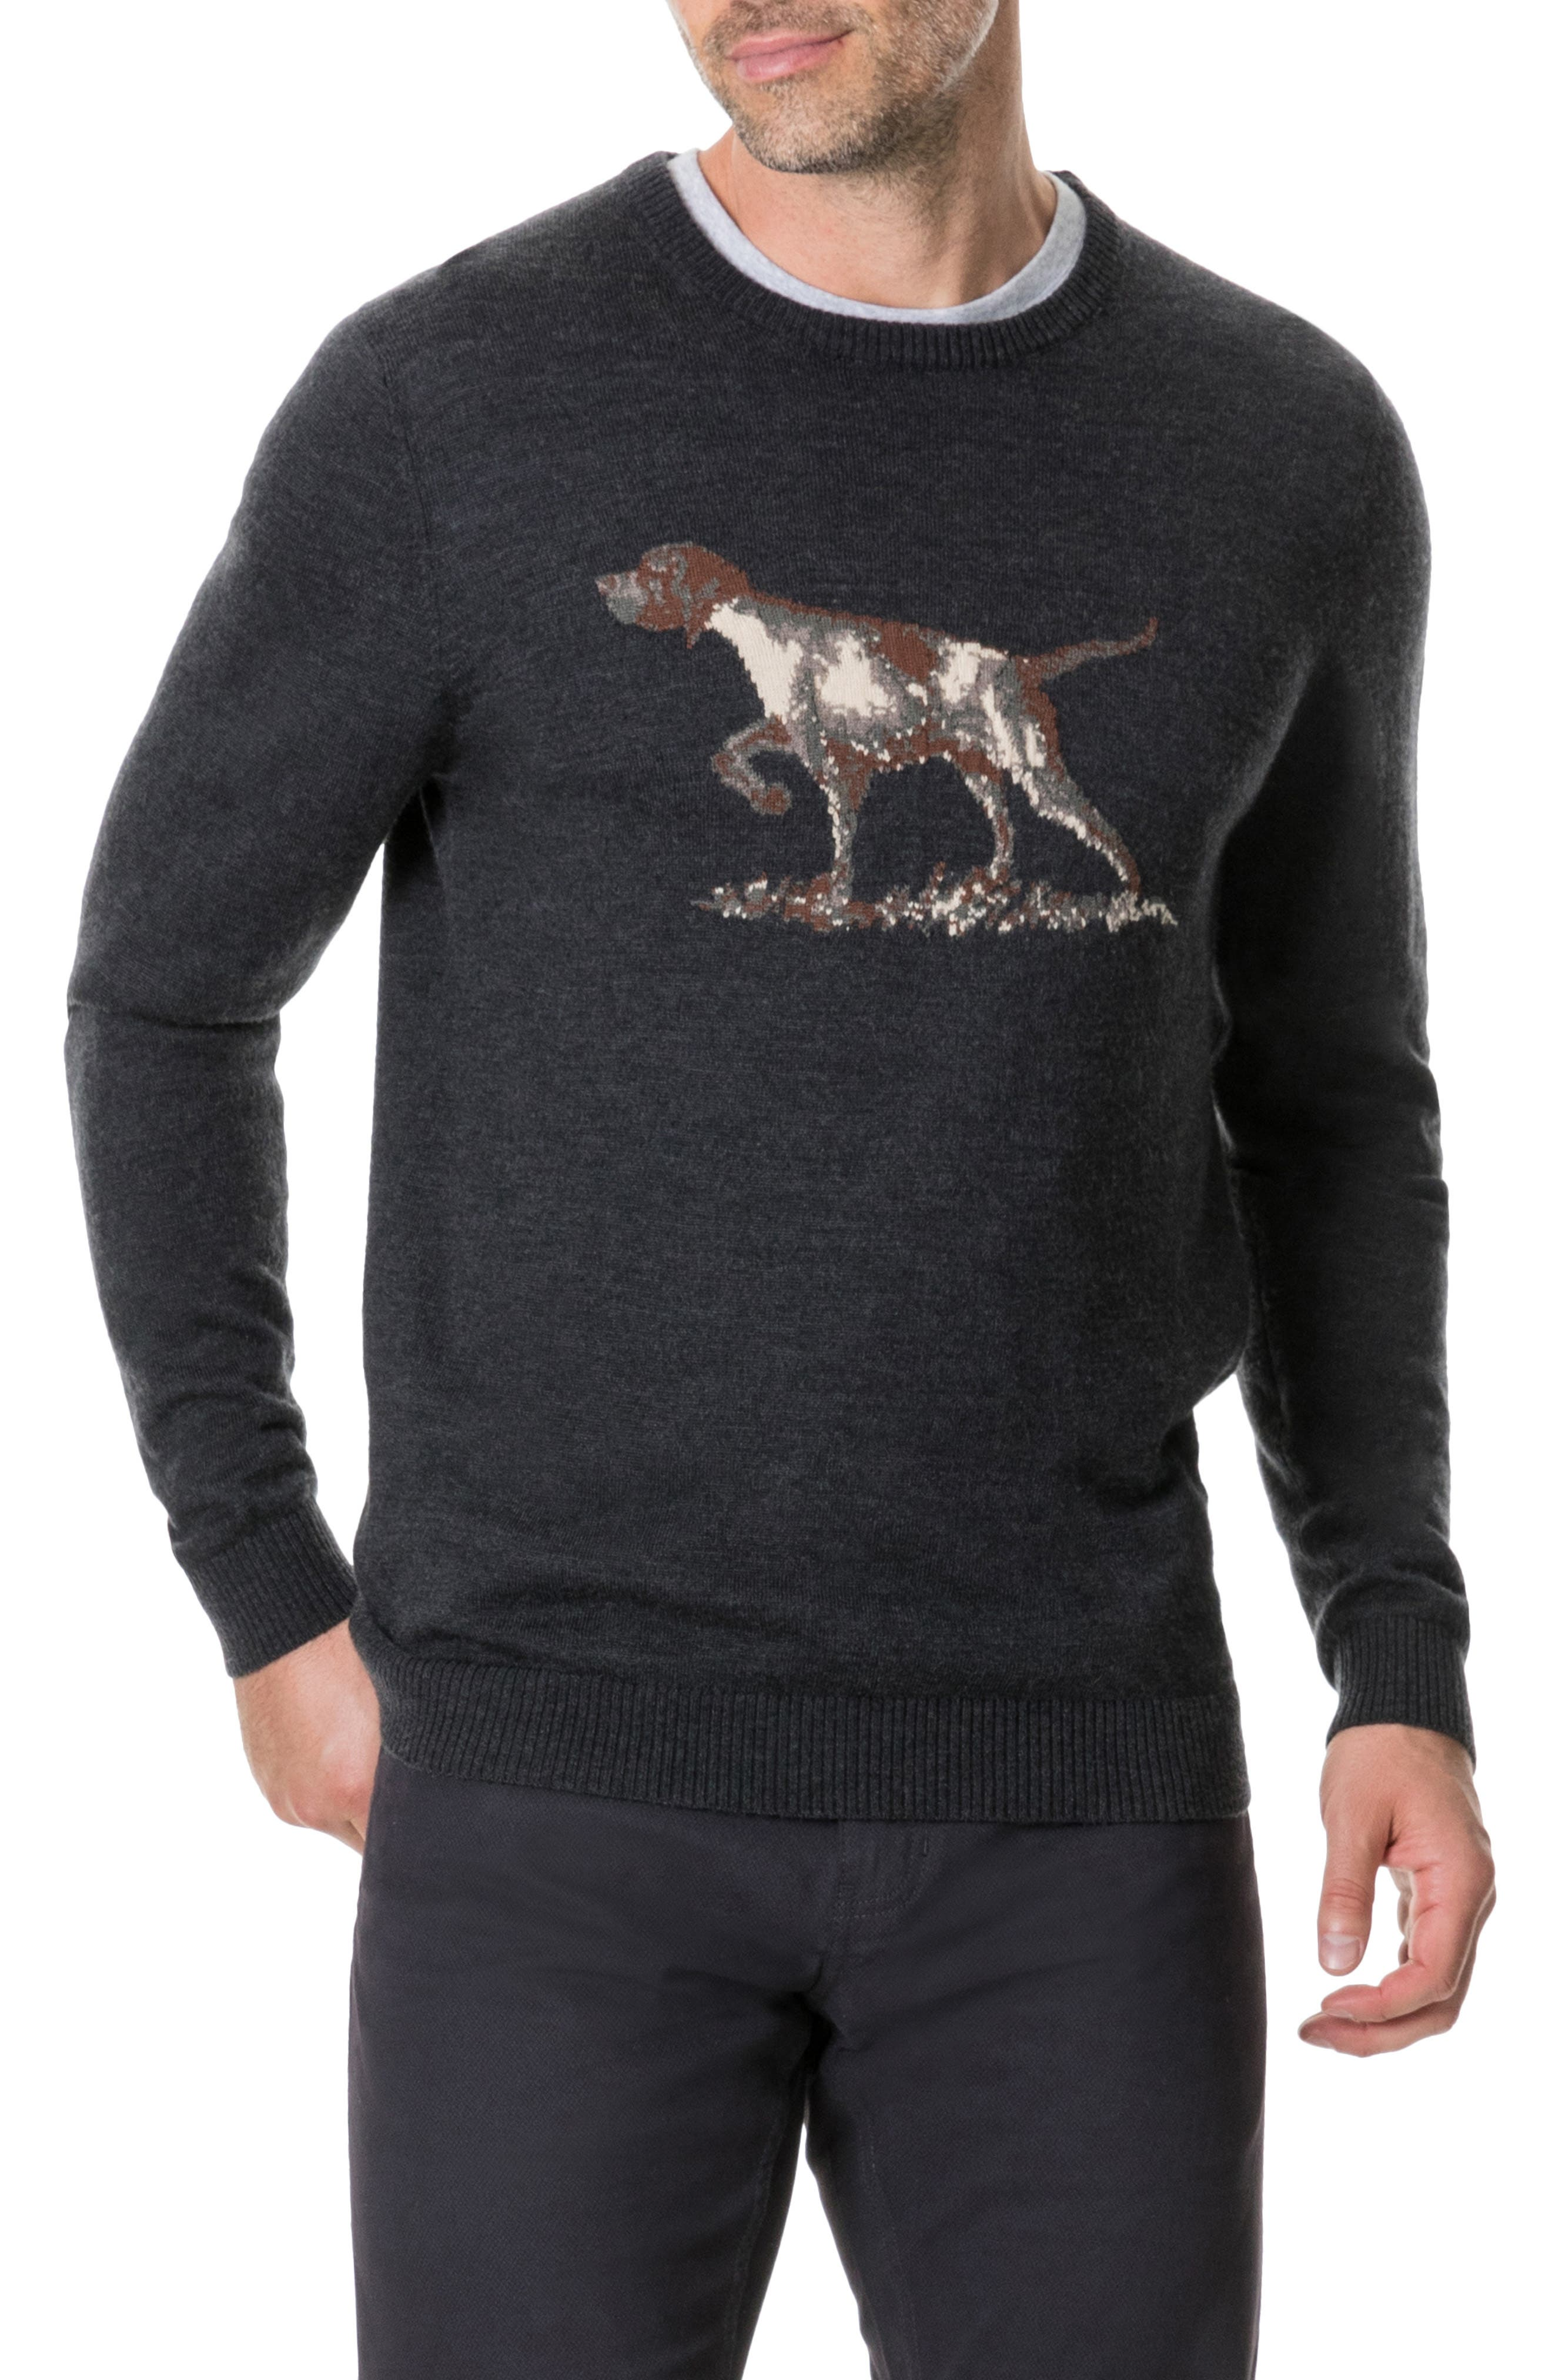 Calderwell Pointer Intarsia Knit Wool Sweater,                         Main,                         color, CHARCOAL